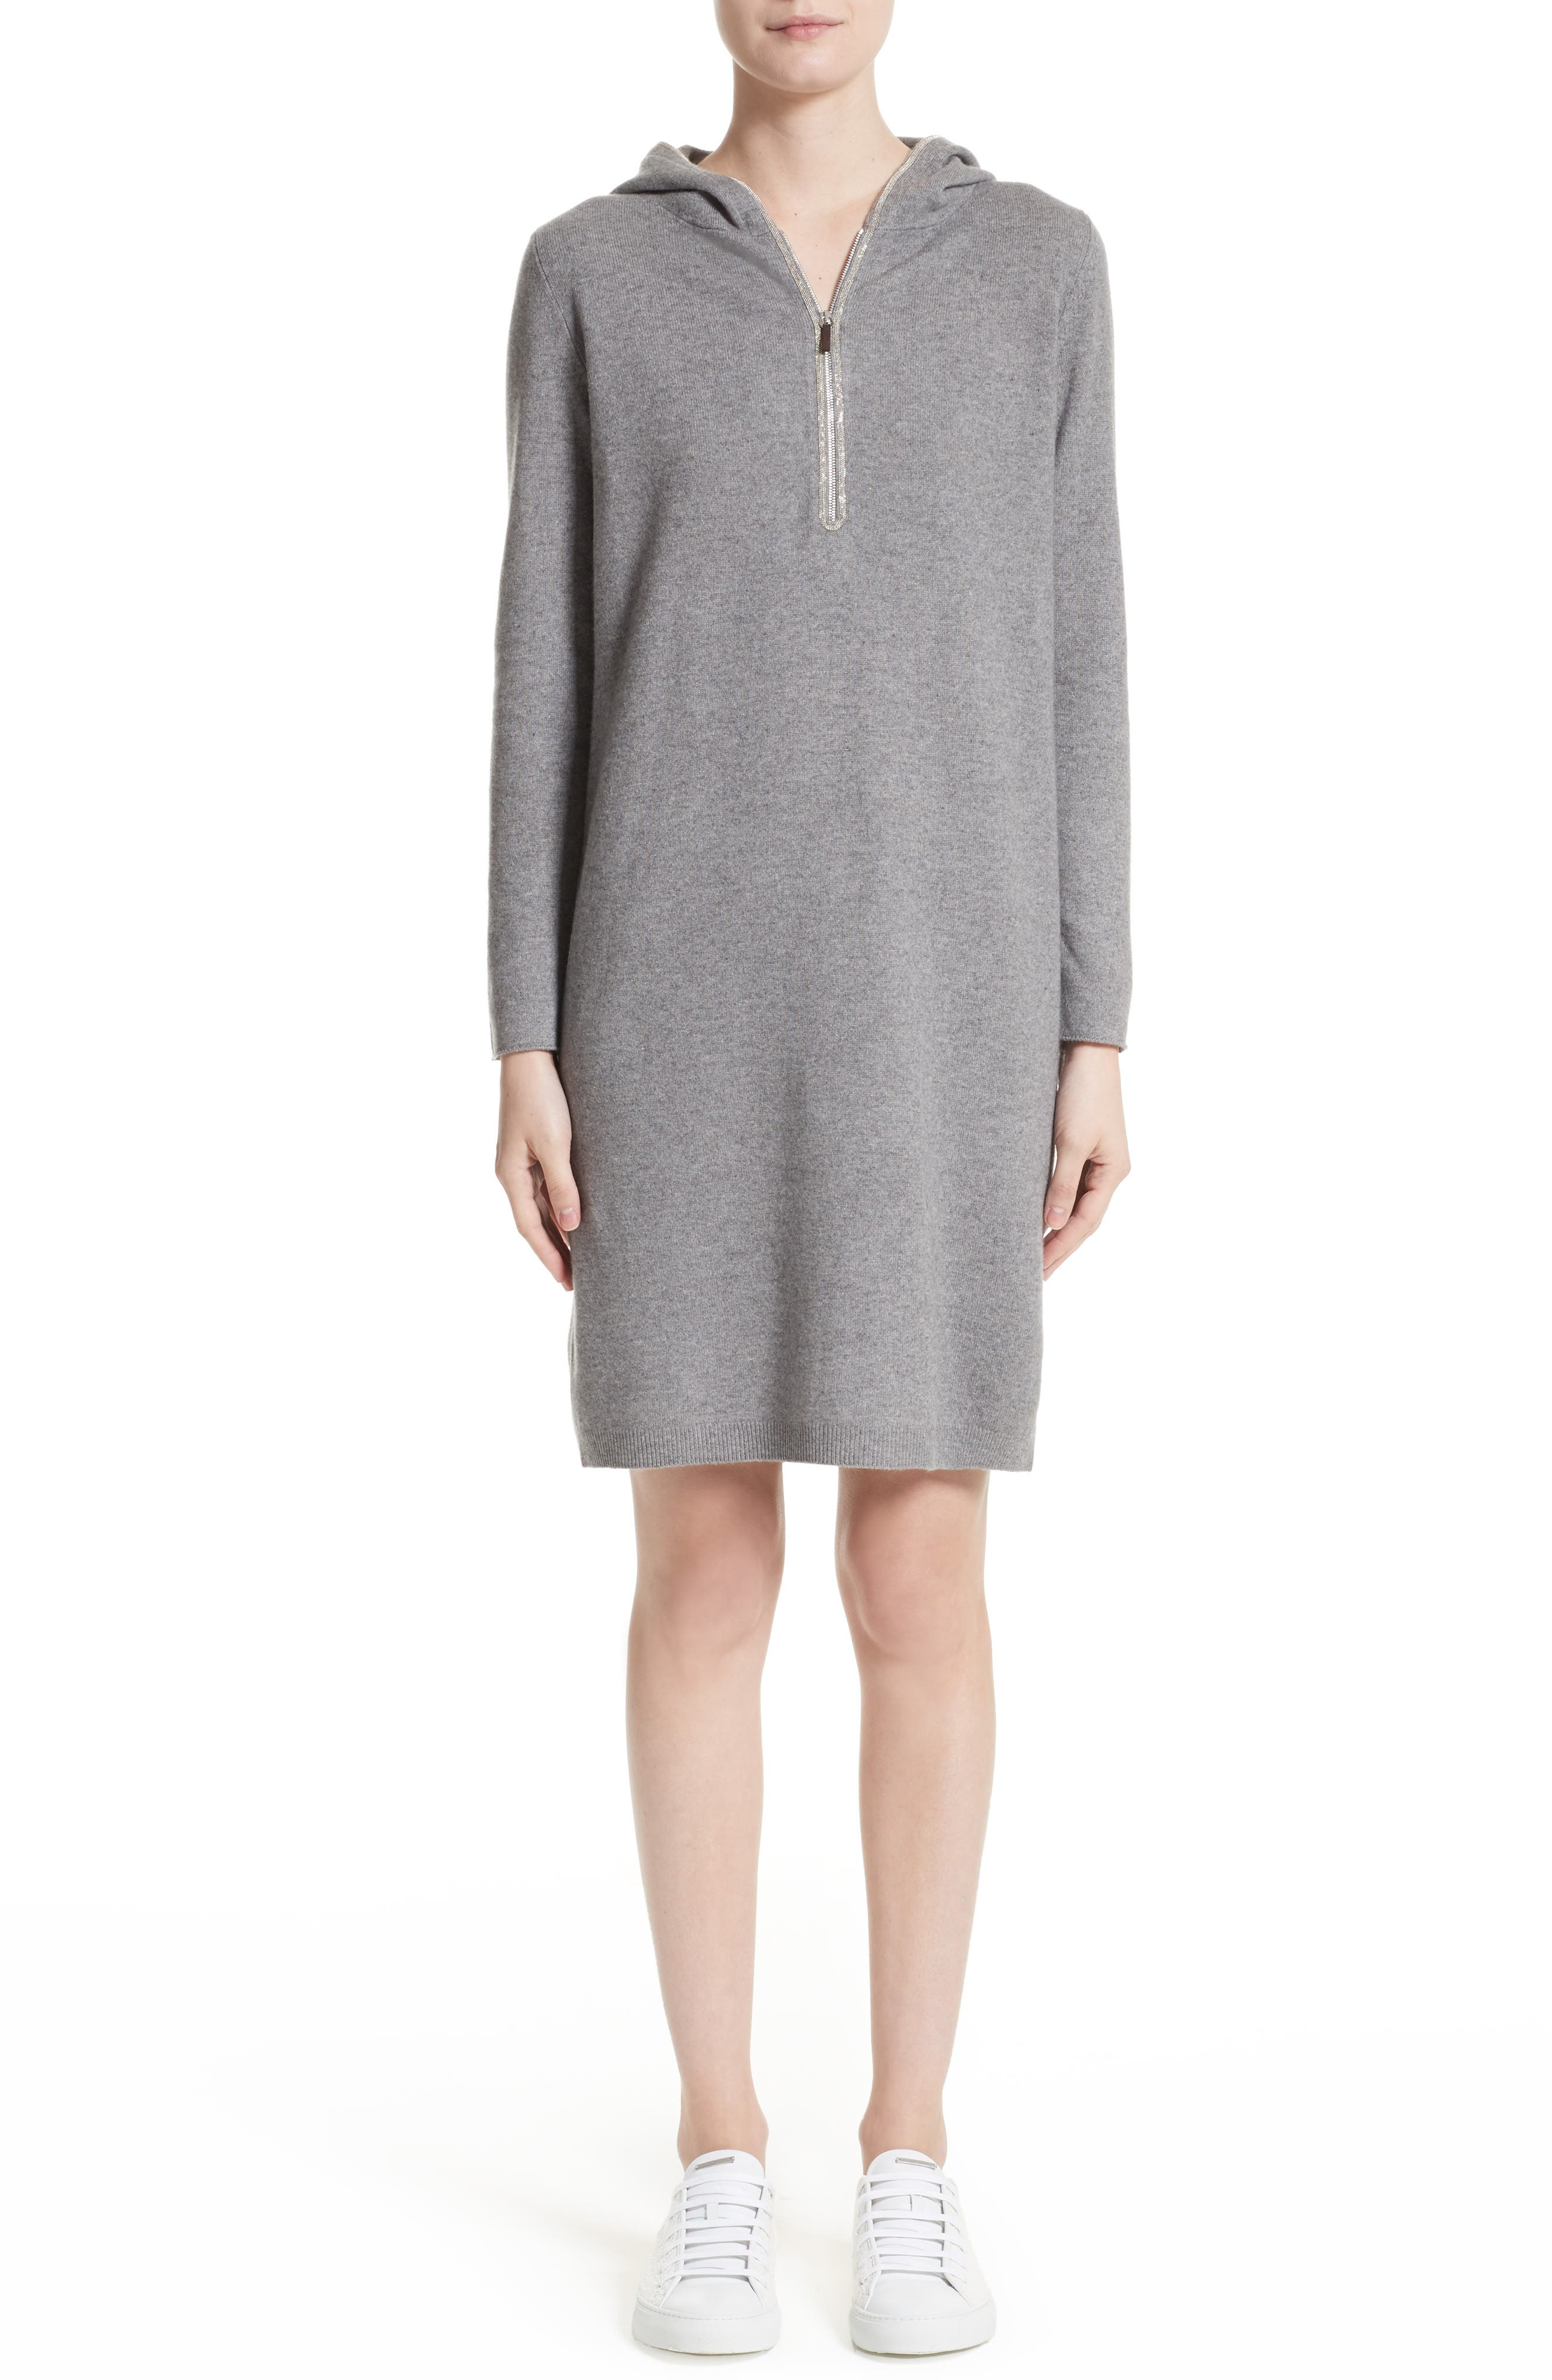 Fabiana Filippi Wool, Silk & Cashmere Hooded Dress